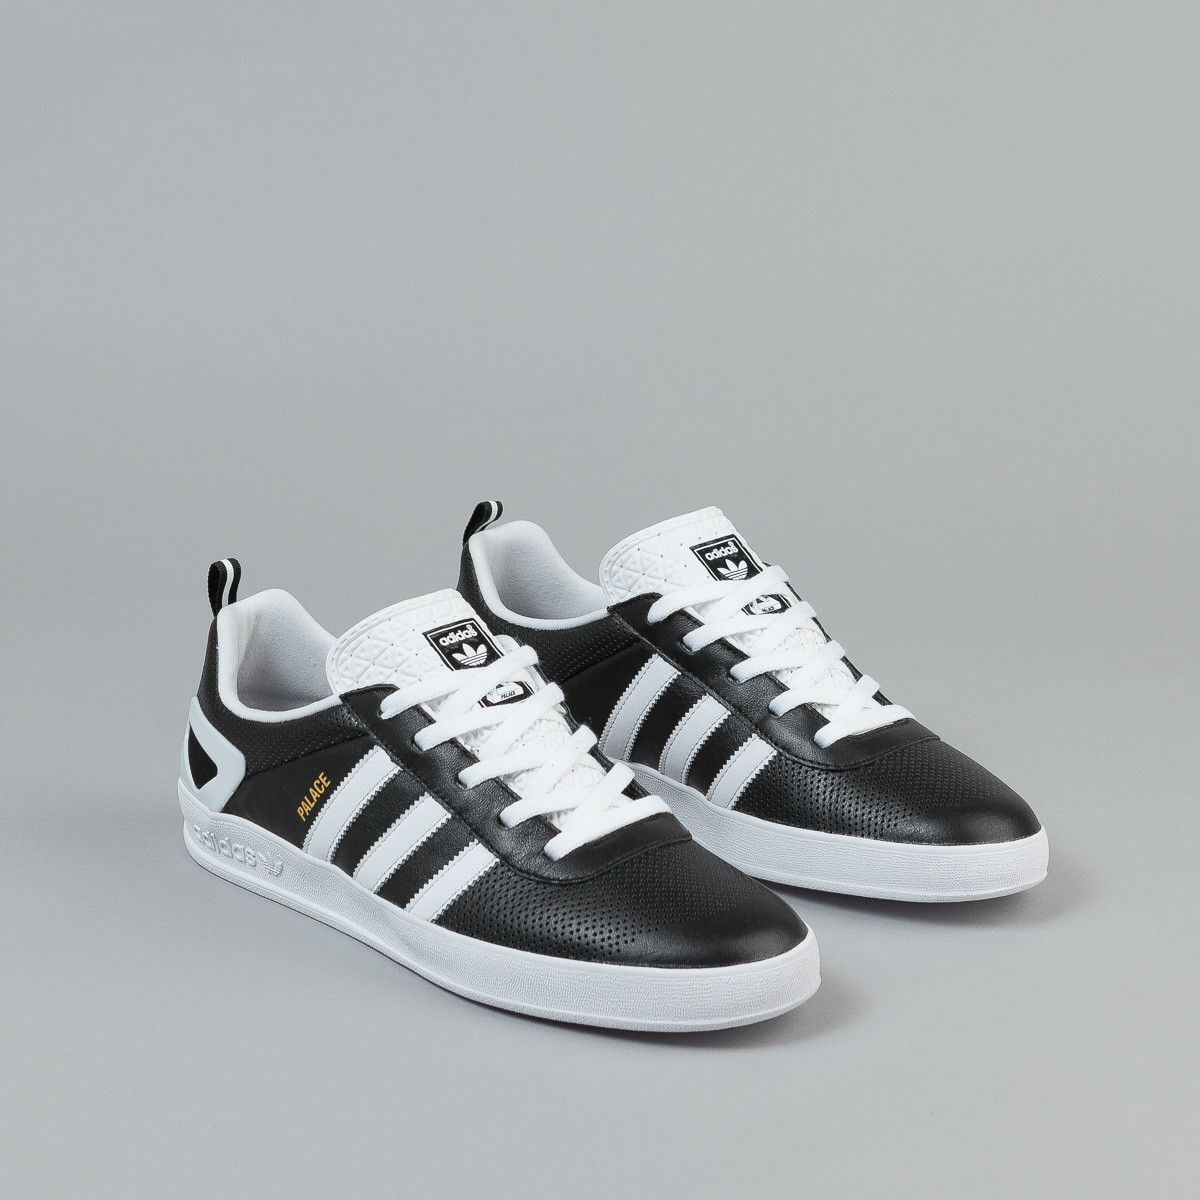 037e041fcca5 Adidas X Palace Pro Shoes - Black   White   Gold